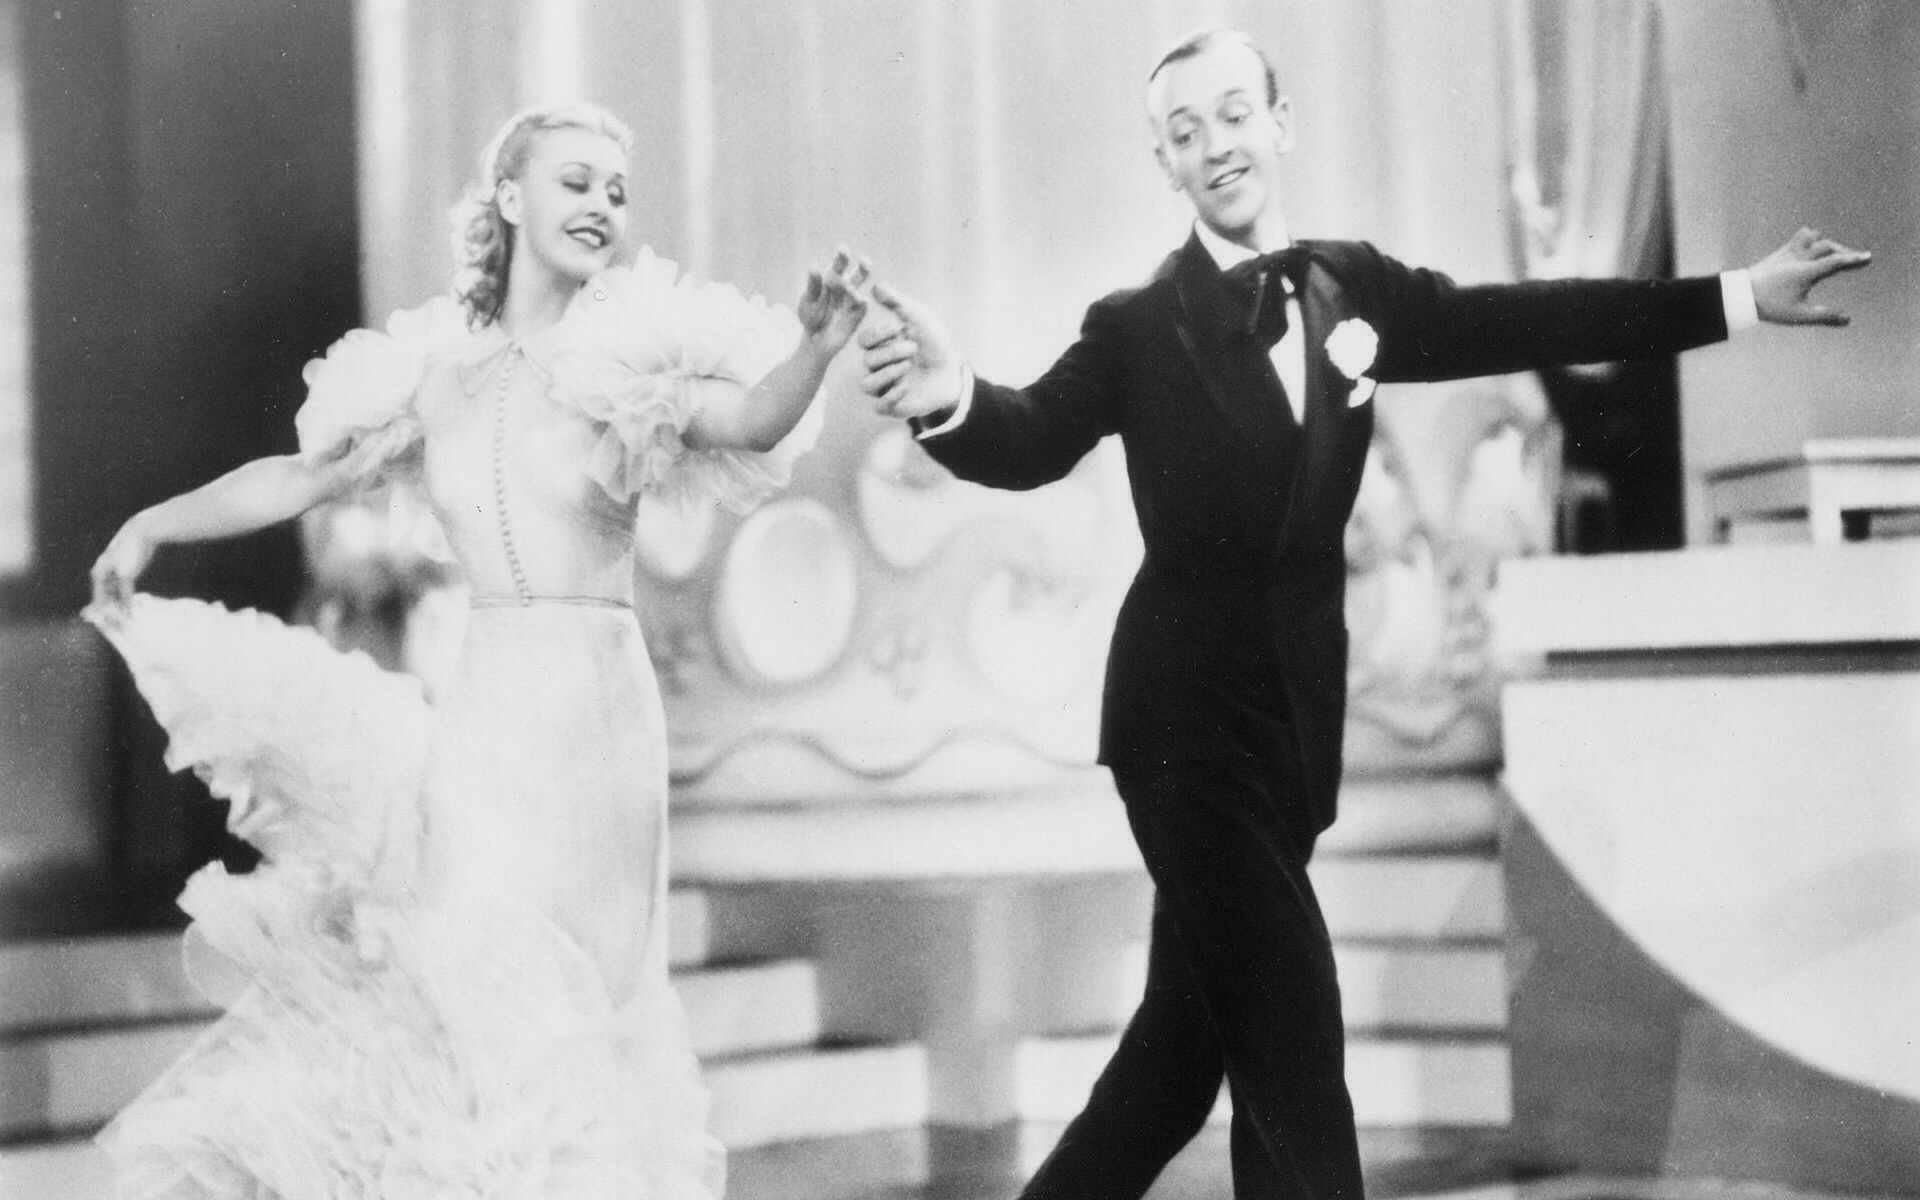 Fred astaire Fred and ginger, Ginger rogers, Fred astaire